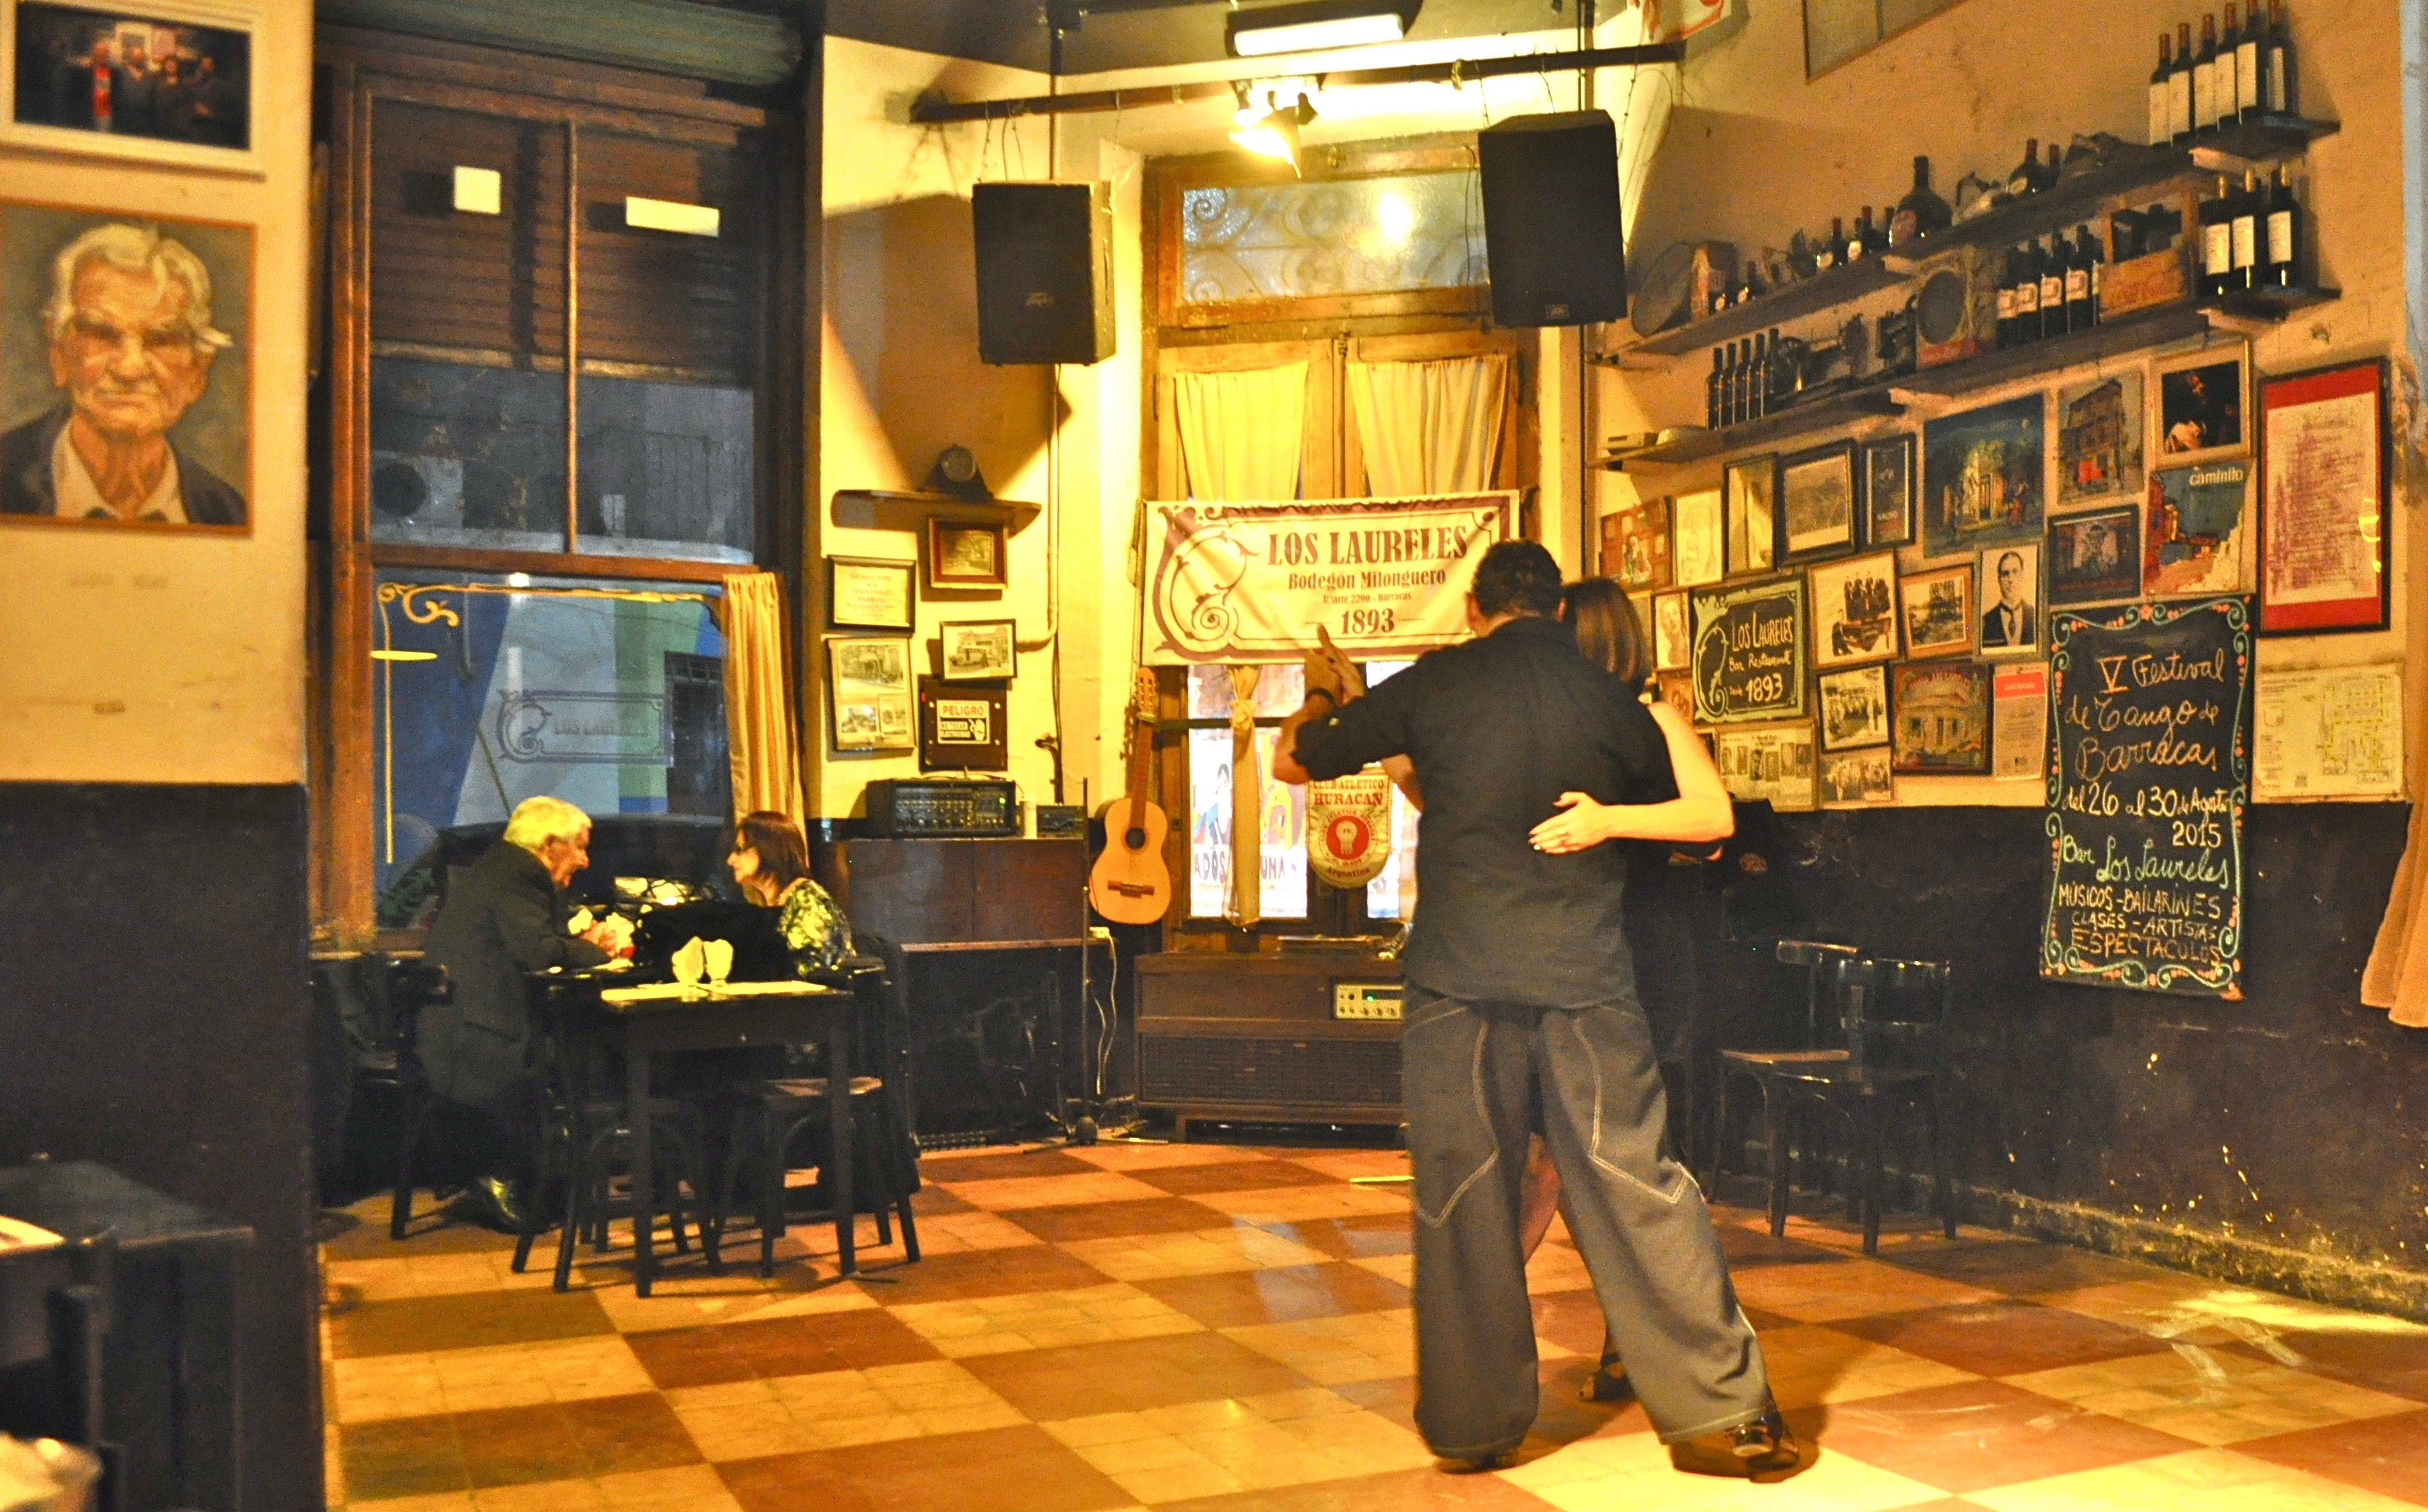 Here's our pic for the first night of the Tango Adventure. Over 100 years old and always a favorite. Tango Adventure: a 7-Day Tango Vacation in Buenos Aires